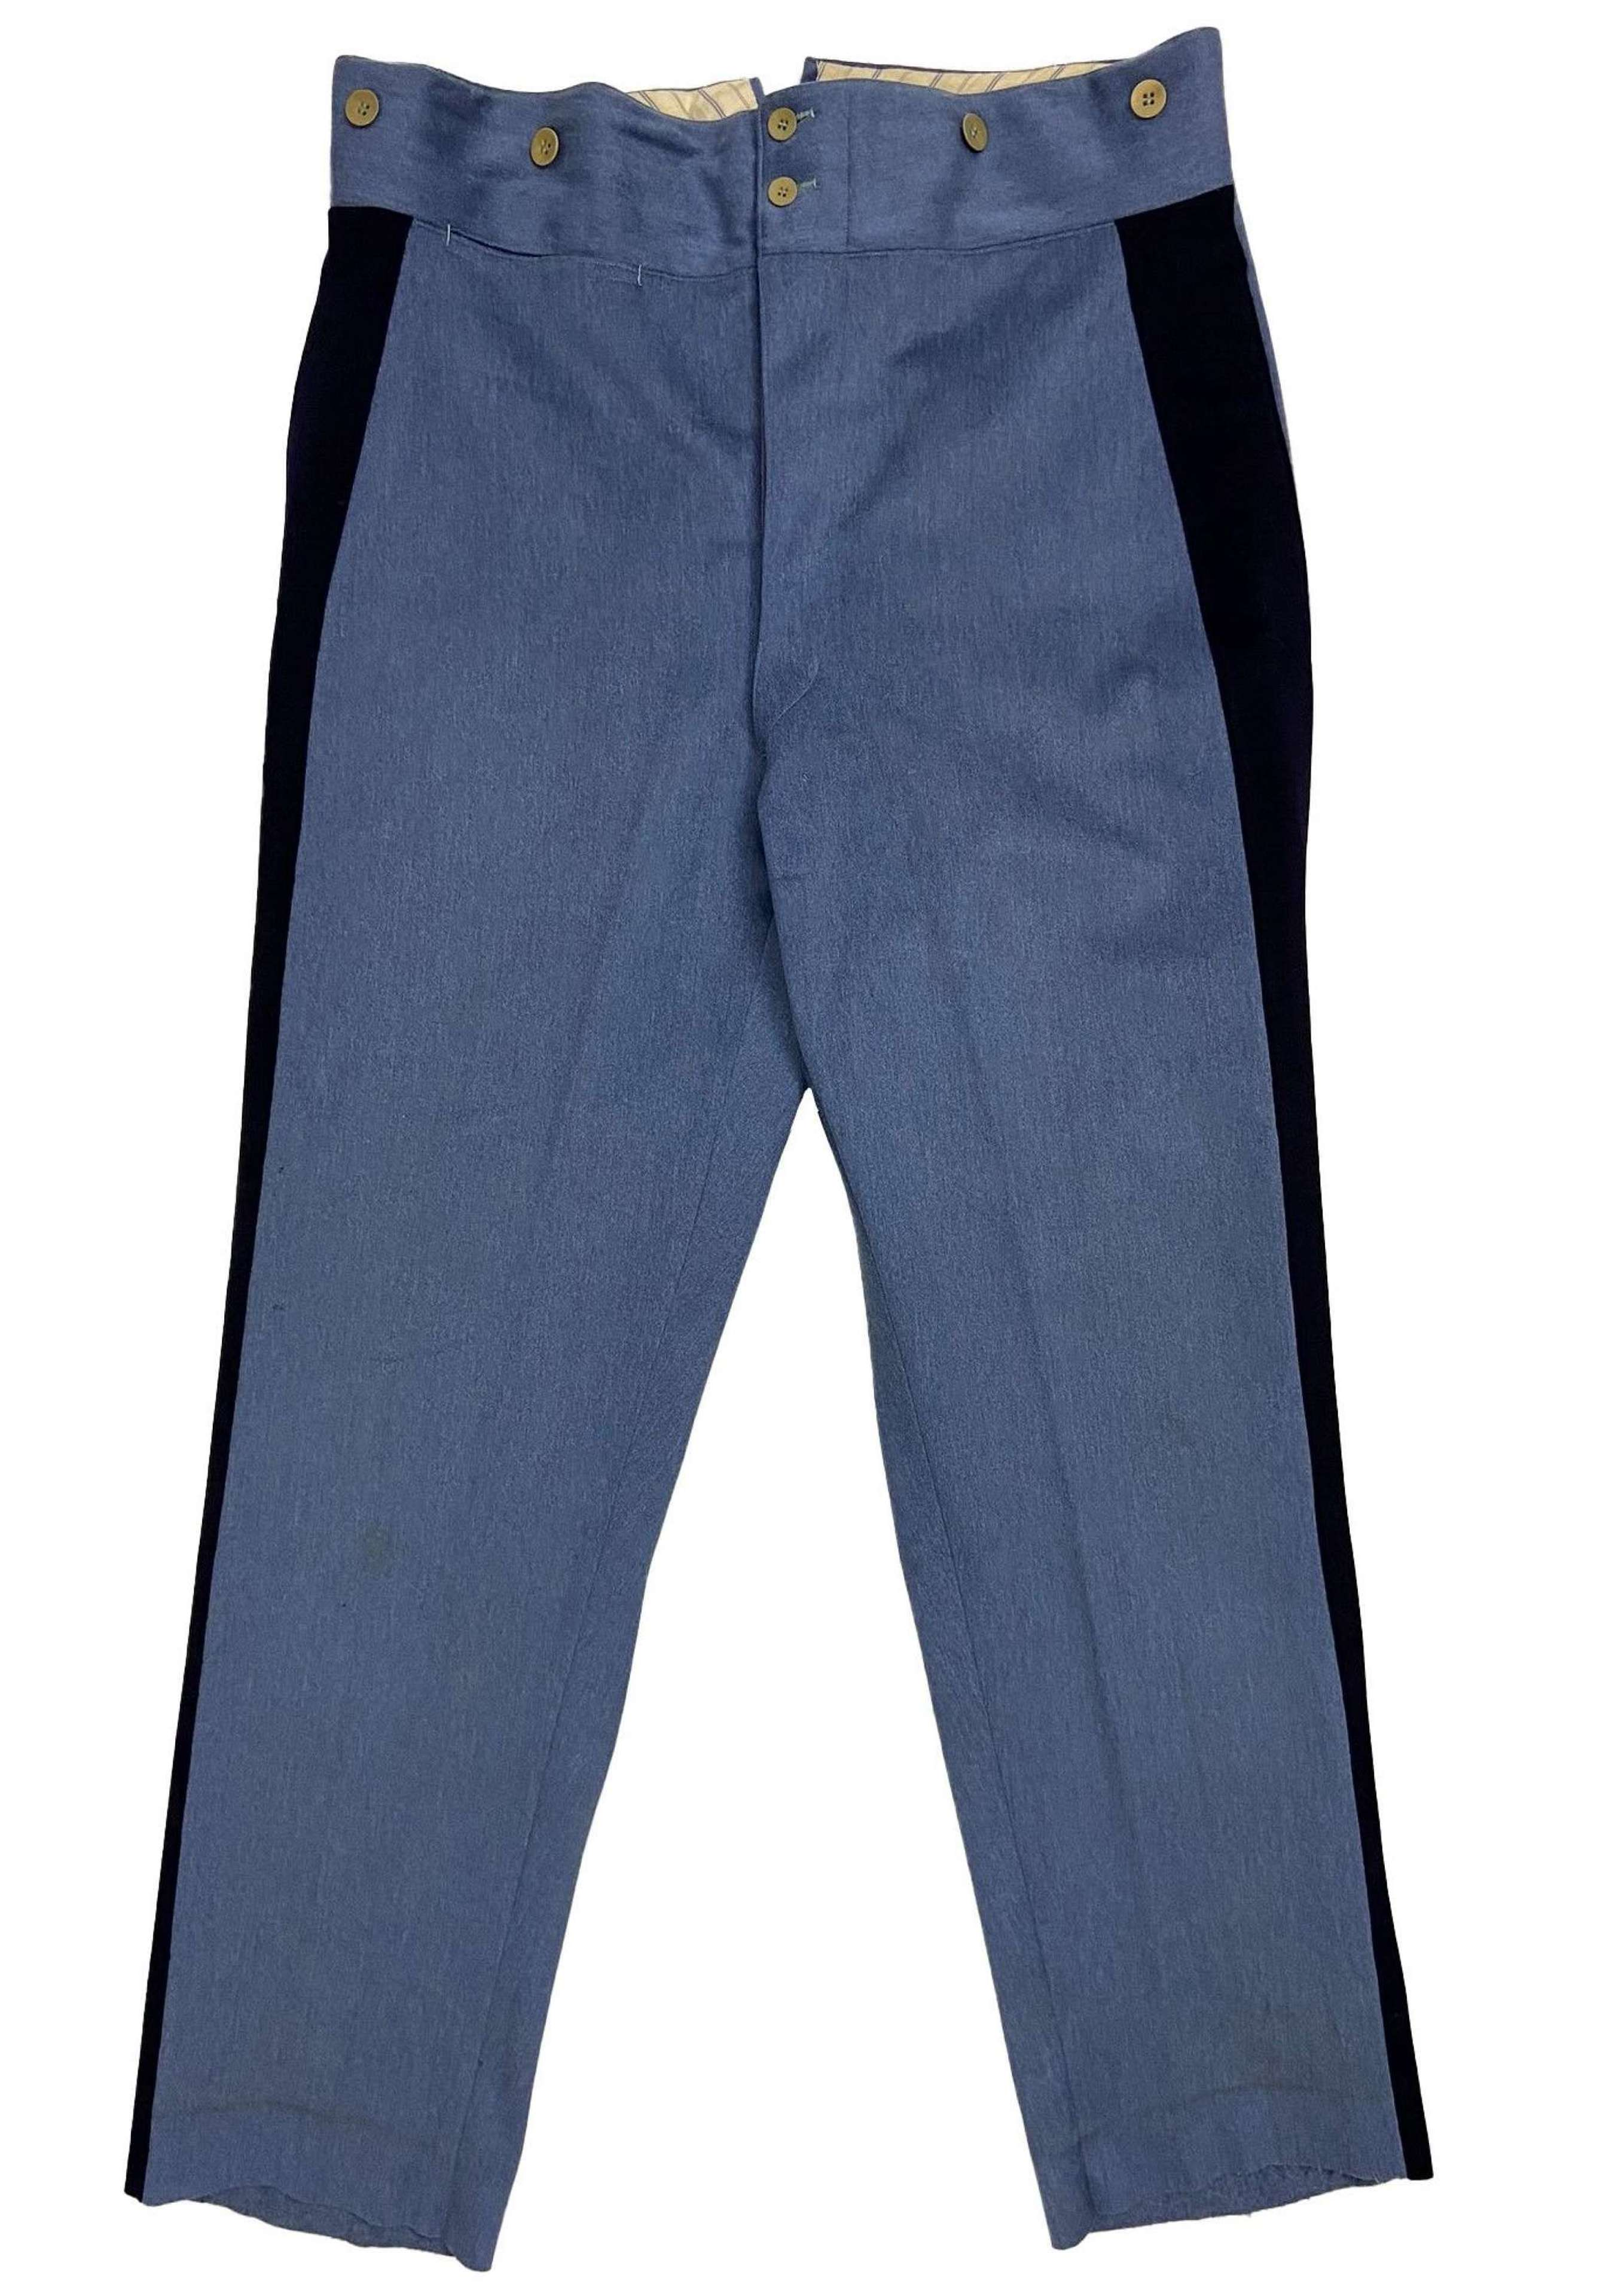 Original 1921 Pattern French Army Officers Trousers